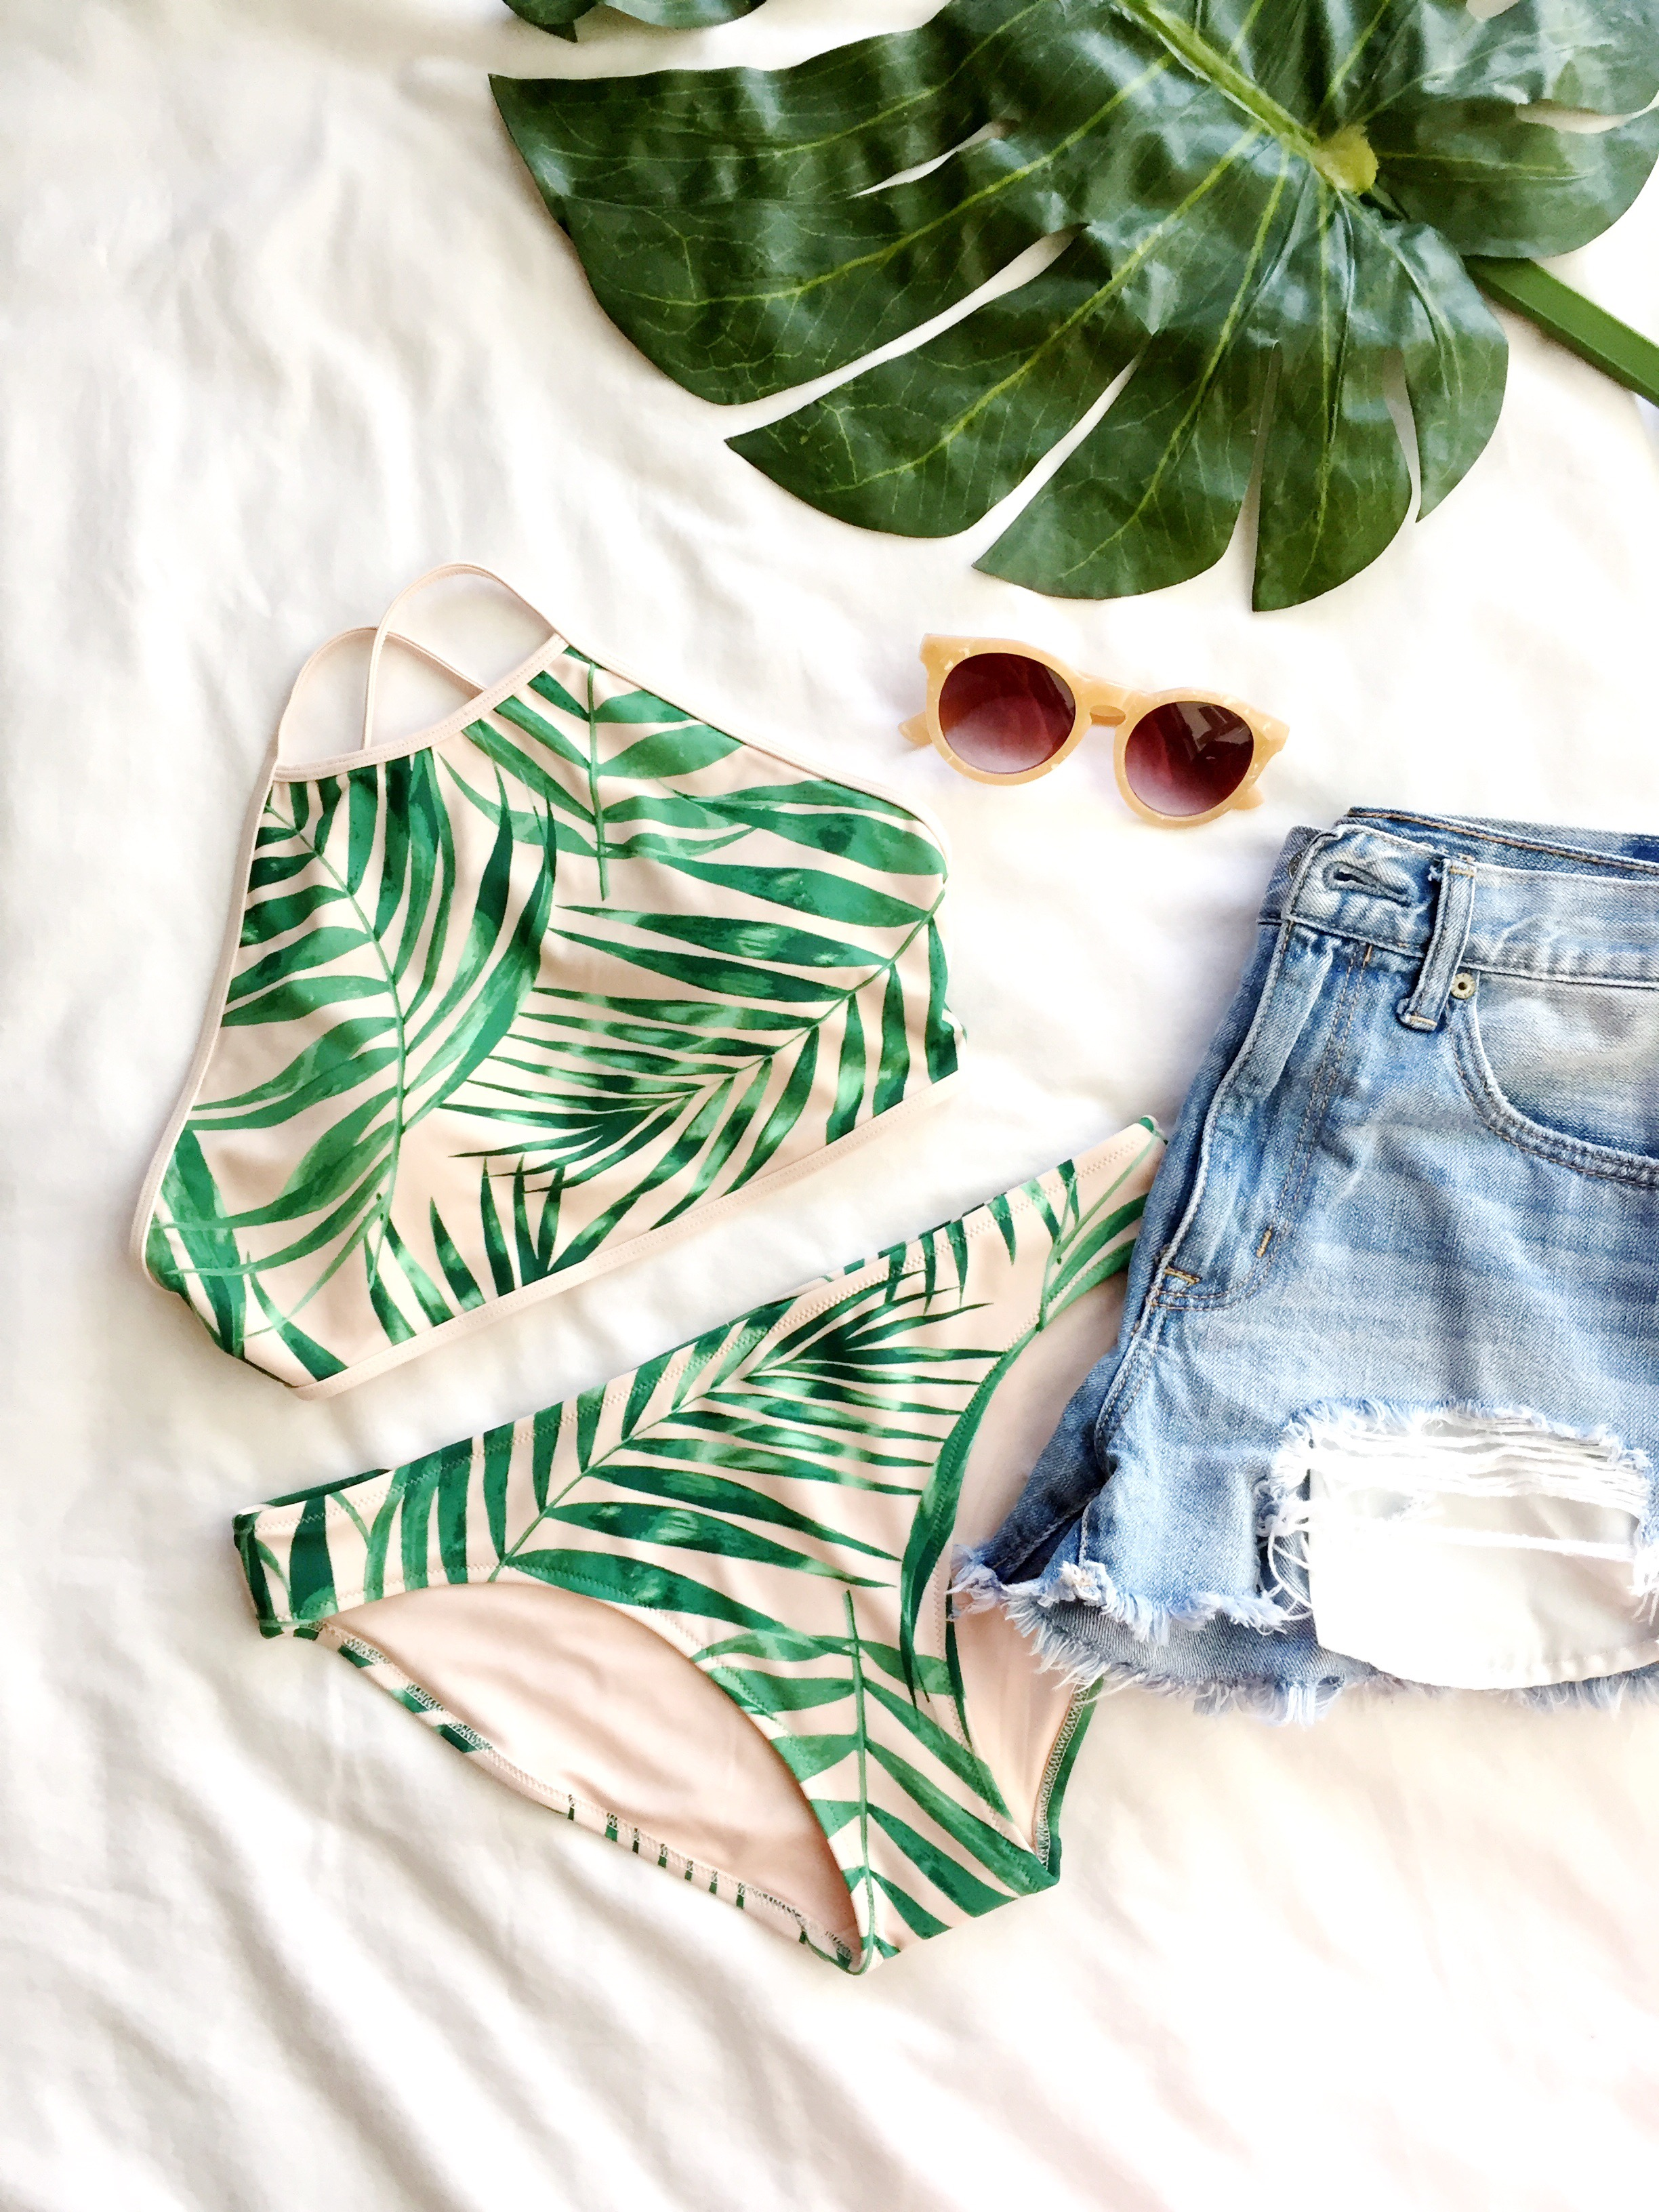 9a9eac2c45fa7 Where to Shop for Cute and Affordable Swimsuits - Sunshine Style ...